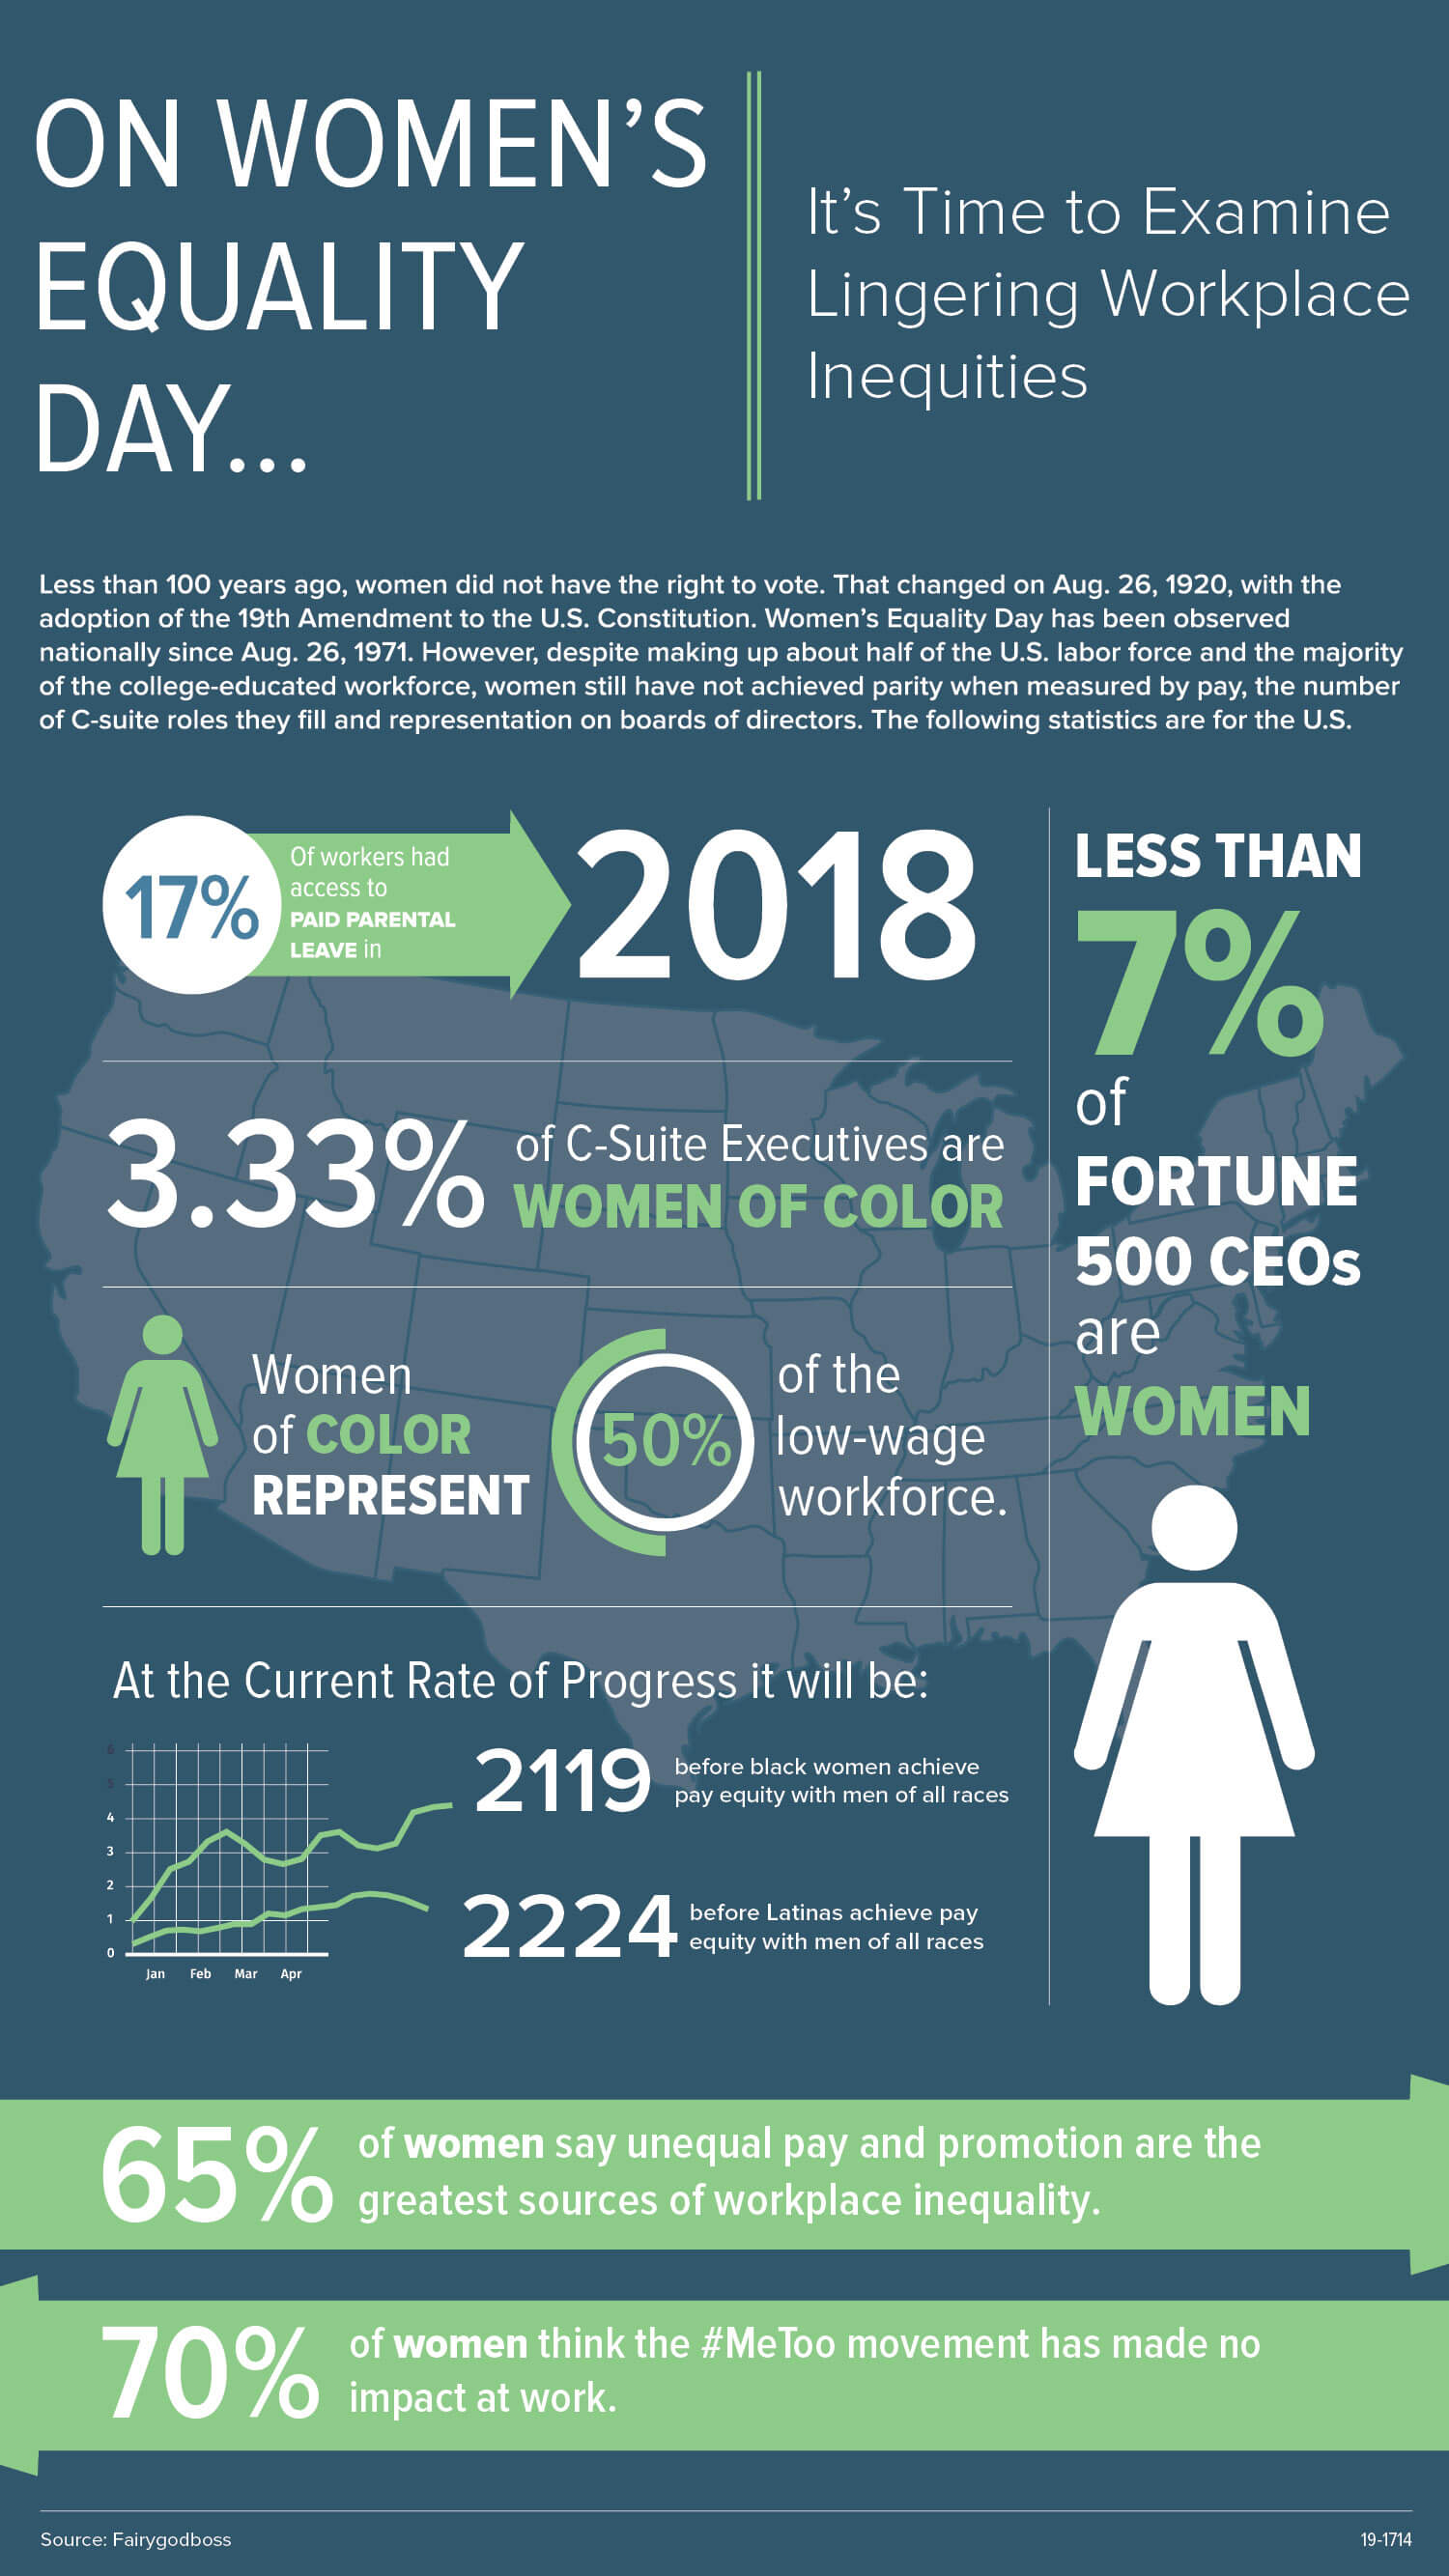 2019 Women's Equality Day infographic2.jpg